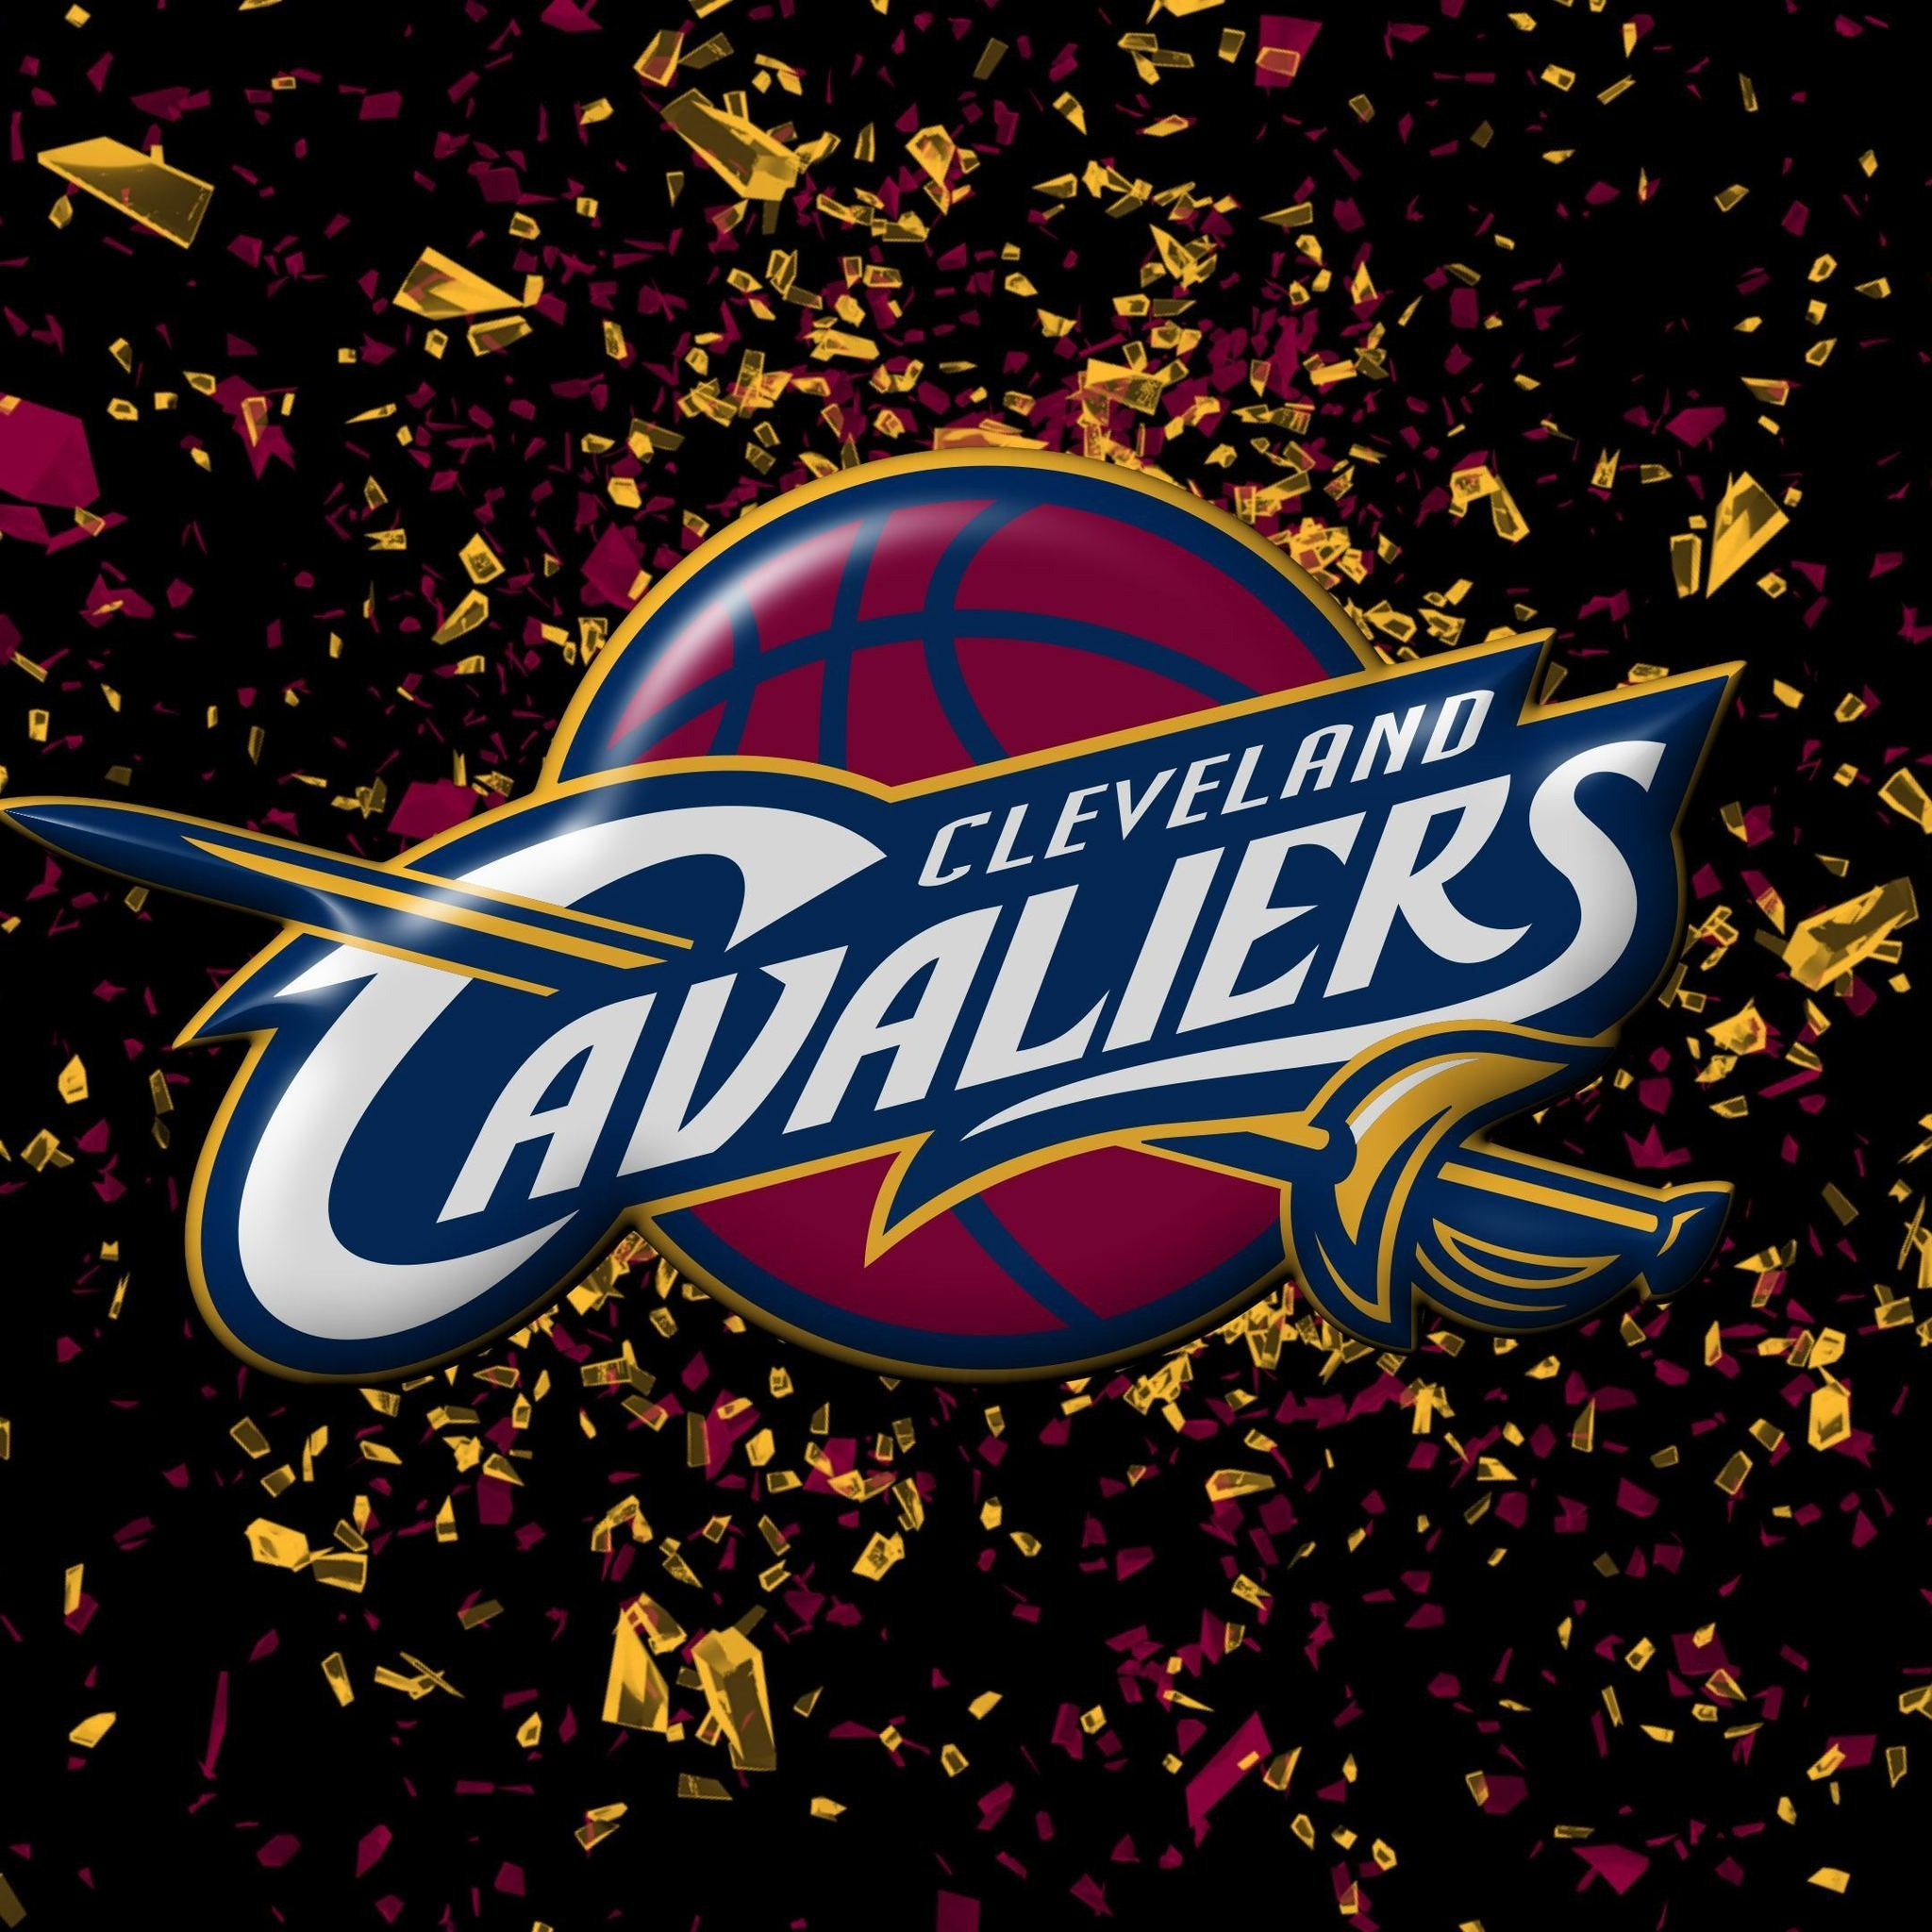 Cleveland Cavaliers for 2048 x 2048 New iPad resolution